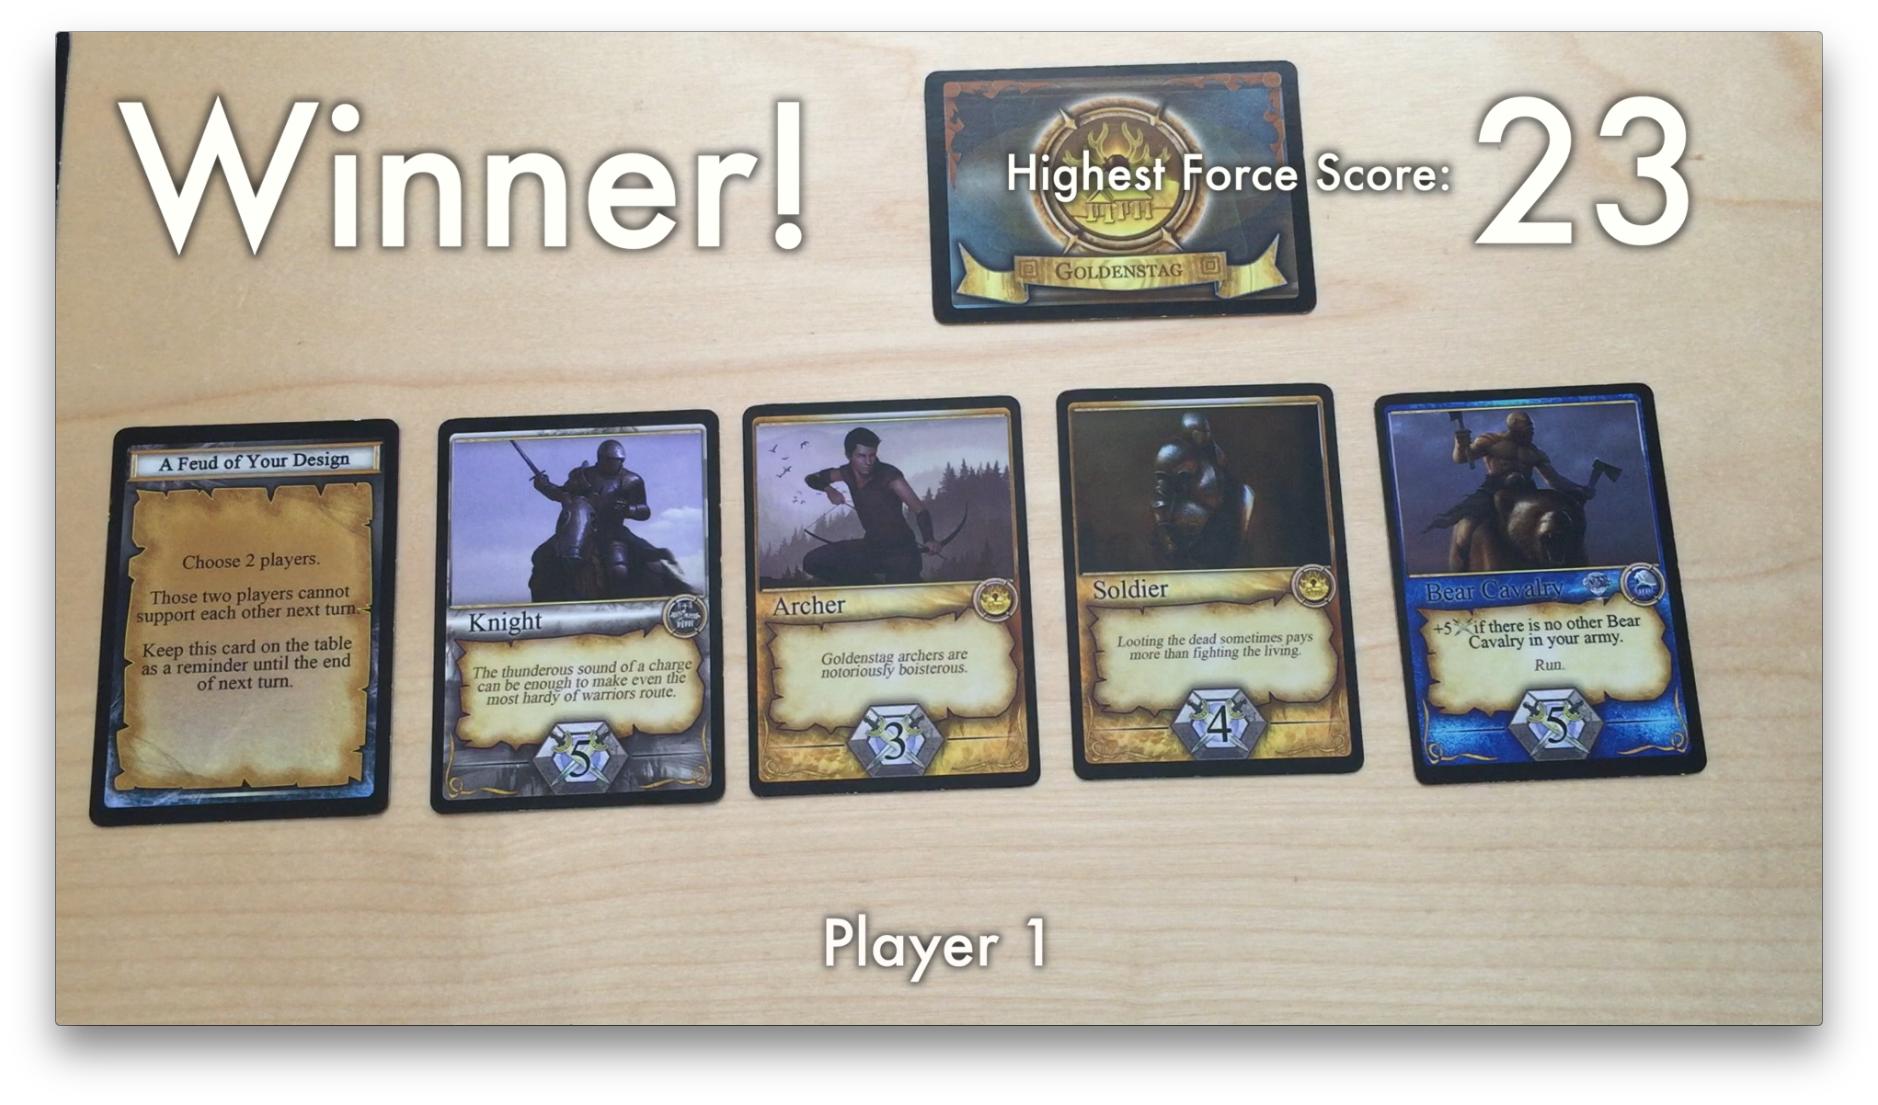 The winning army with 23 force points.